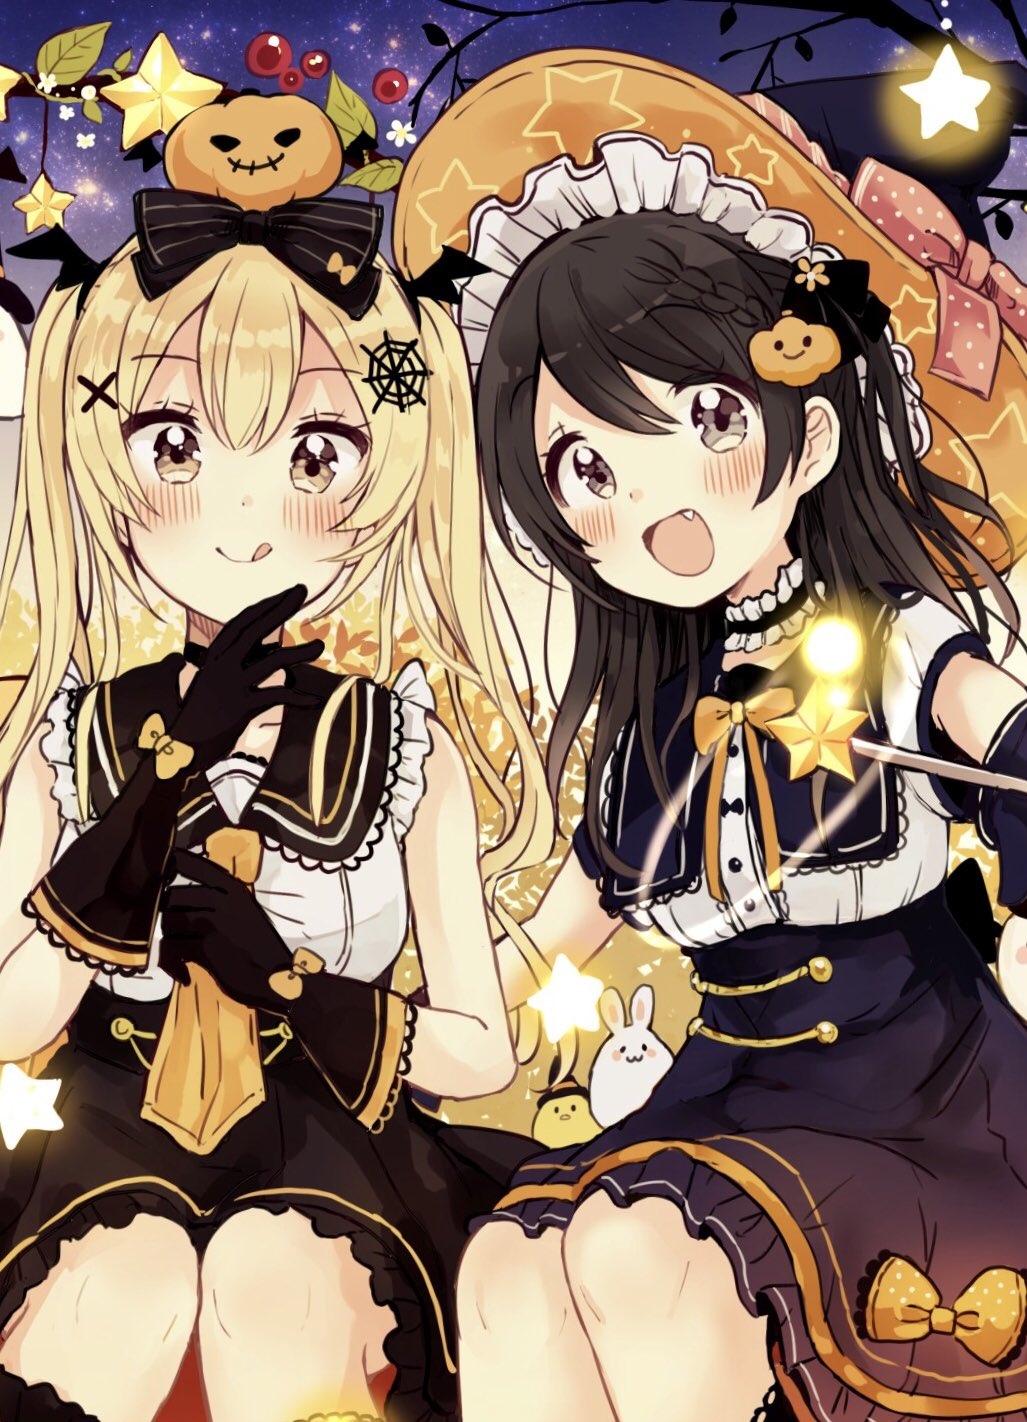 2girls :d :q animal bare_shoulders bird black_bow black_gloves black_hair black_headwear black_sailor_collar black_skirt blonde_hair blush bow braid brown_eyes chick closed_mouth fang food_themed_hair_ornament gloves hair_bow hair_ornament halloween hat highres long_hair multiple_girls open_mouth orange_bow orange_headwear orange_neckwear original pleated_skirt pumpkin_hair_ornament rabbit sailor_collar sakura_oriko shirt skirt sleeveless sleeveless_shirt smile spider_web_hair_ornament star star_print striped striped_bow tongue tongue_out twintails very_long_hair wand white_shirt witch_hat x_hair_ornament